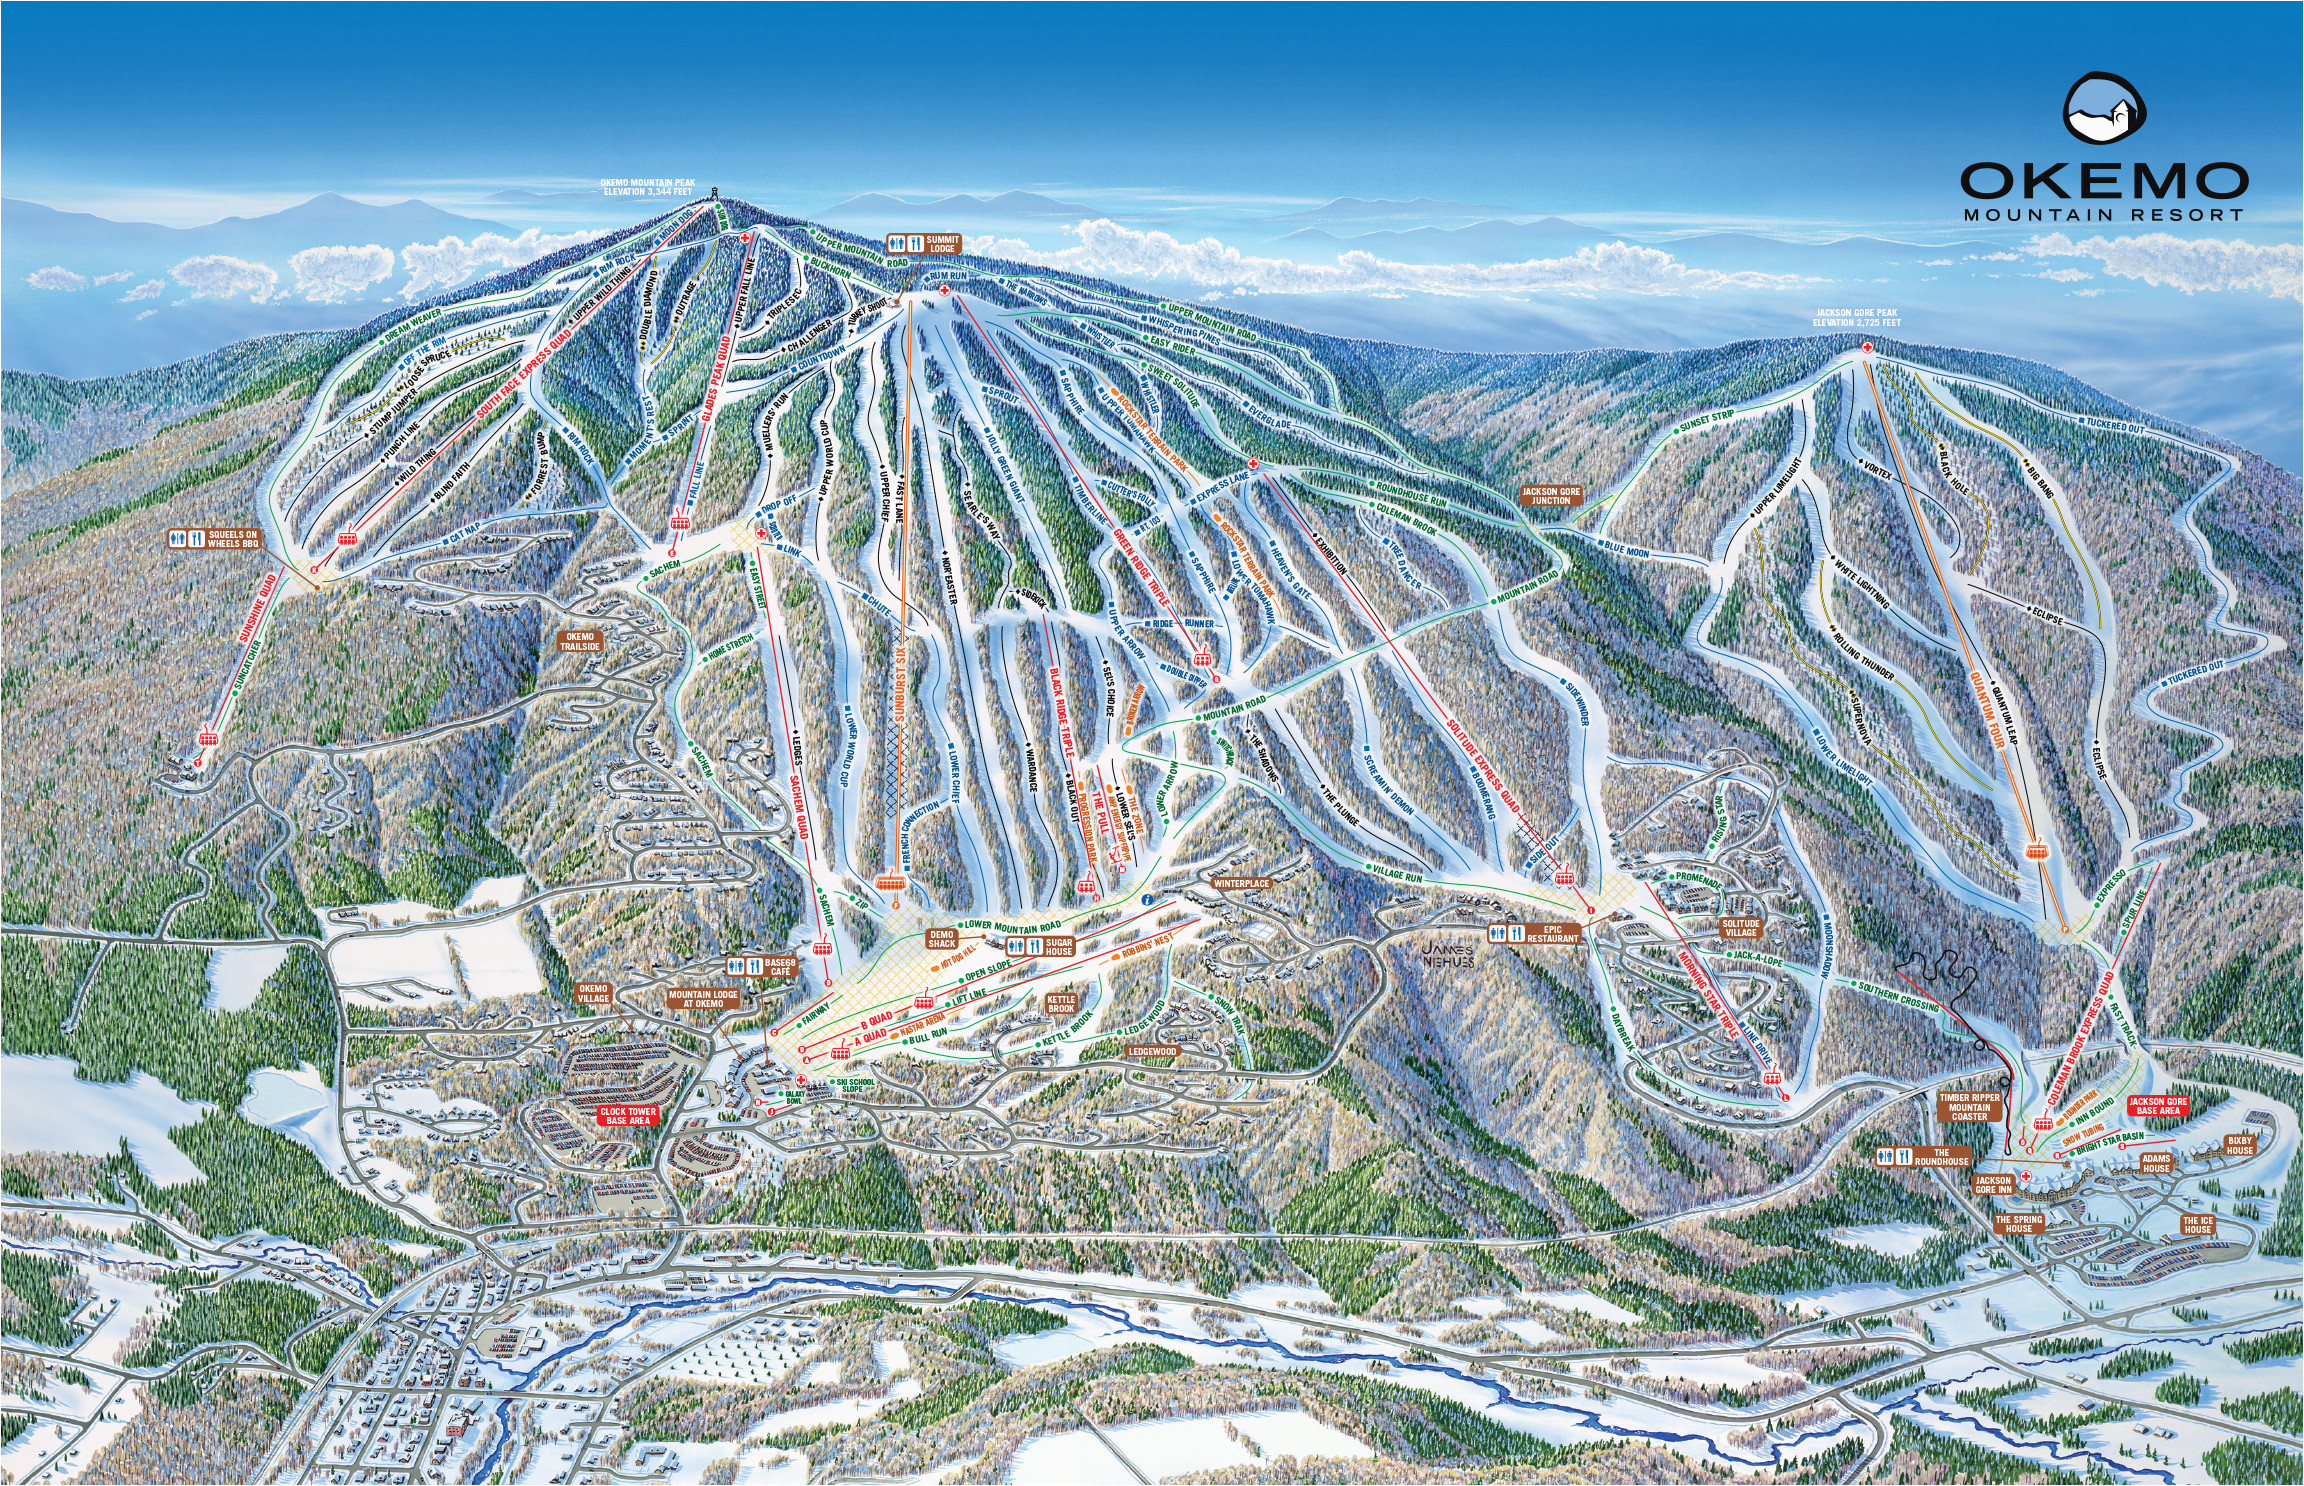 okemo mountain resort skimap org